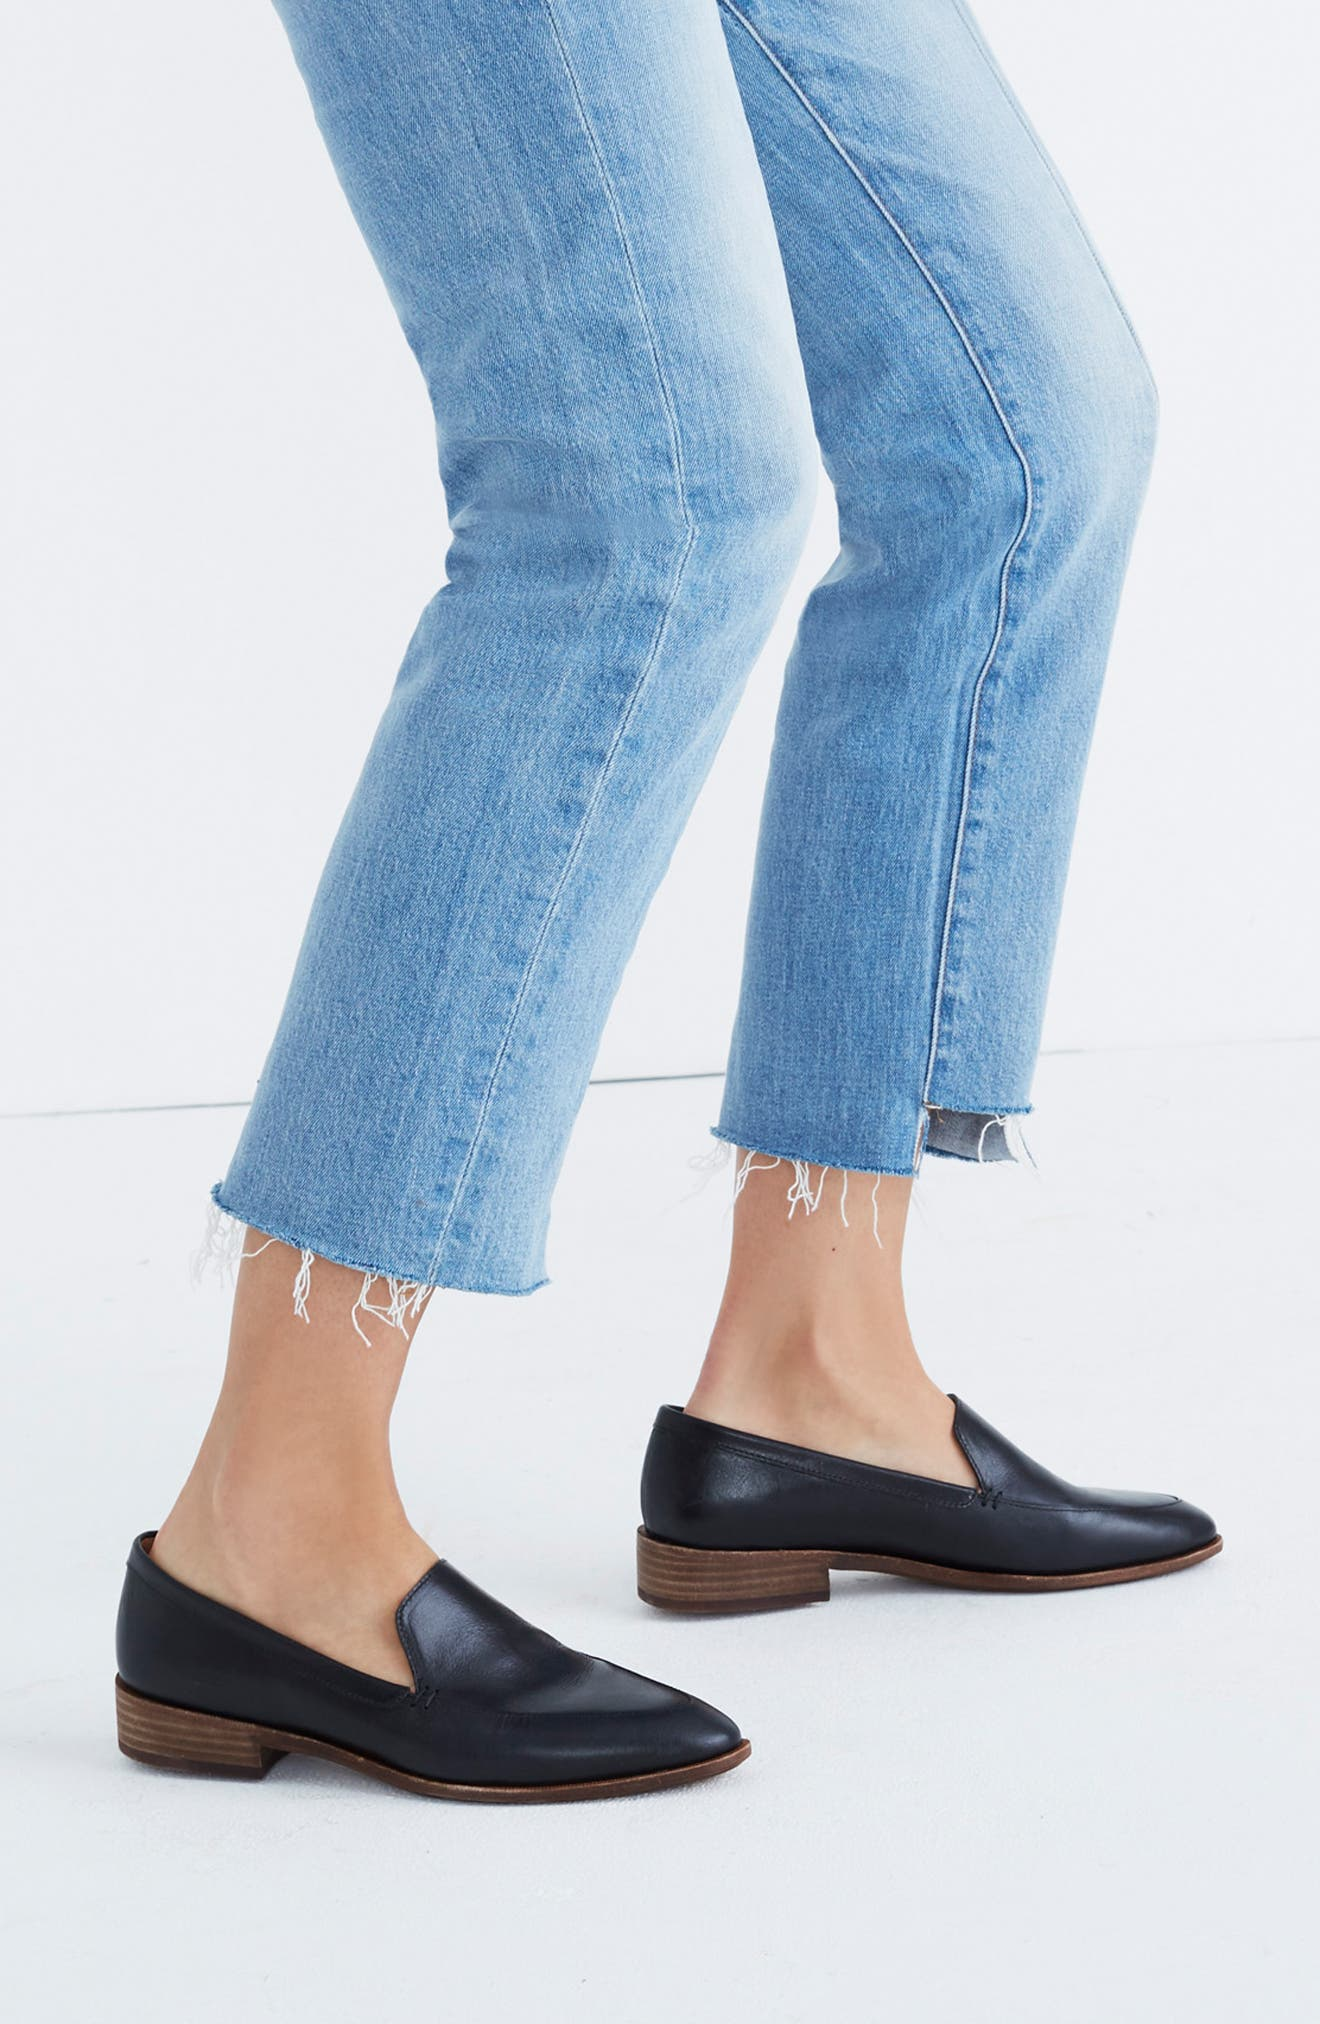 MADEWELL, The Frances Loafer, Alternate thumbnail 8, color, TRUE BLACK LEATHER